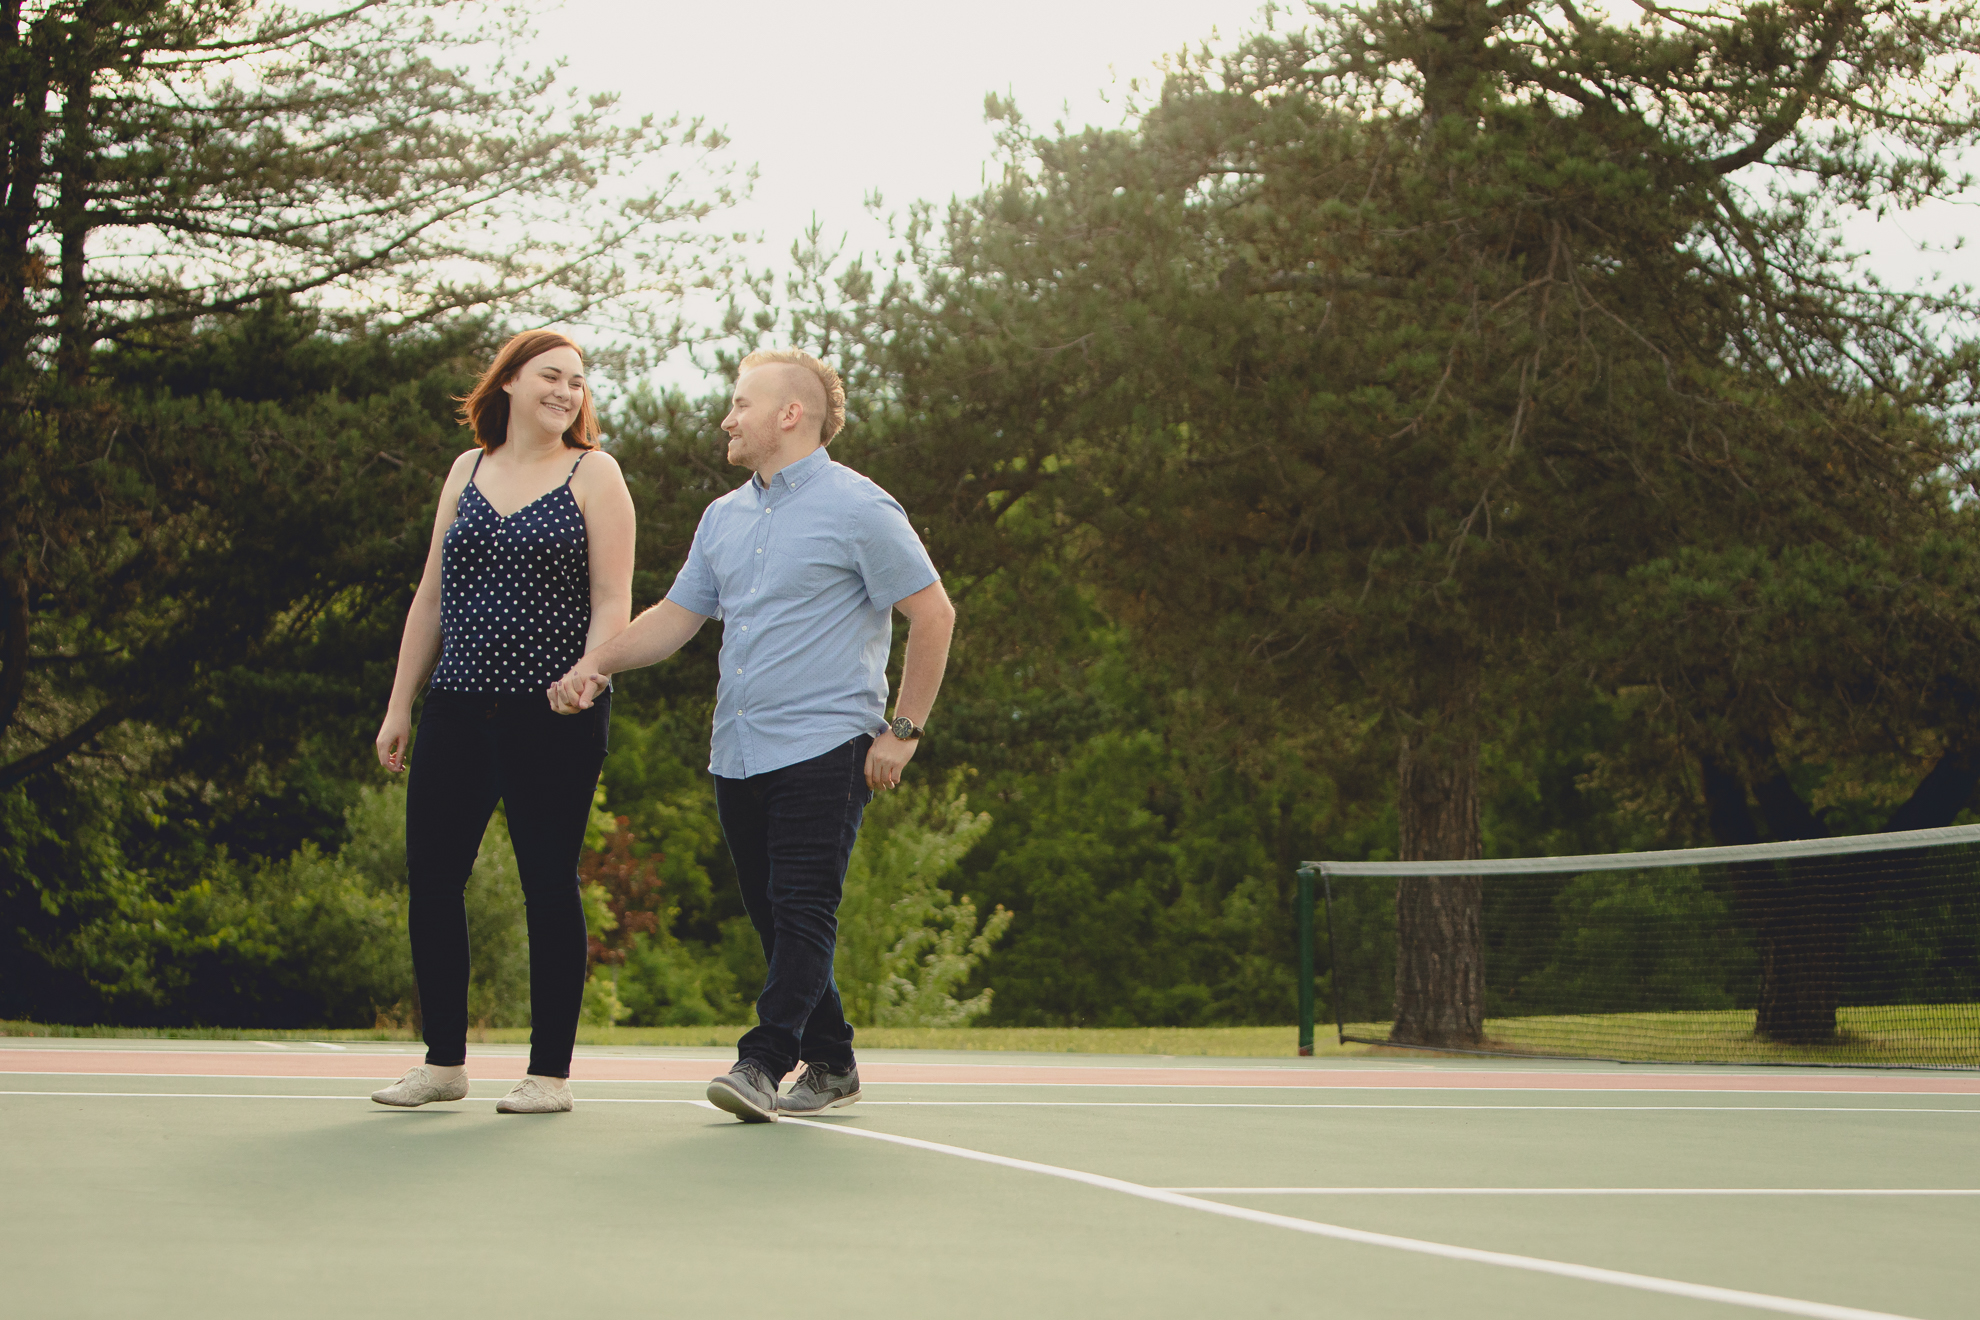 engaged couple walks together on tennis court at Akron Falls Park near Buffalo, NY